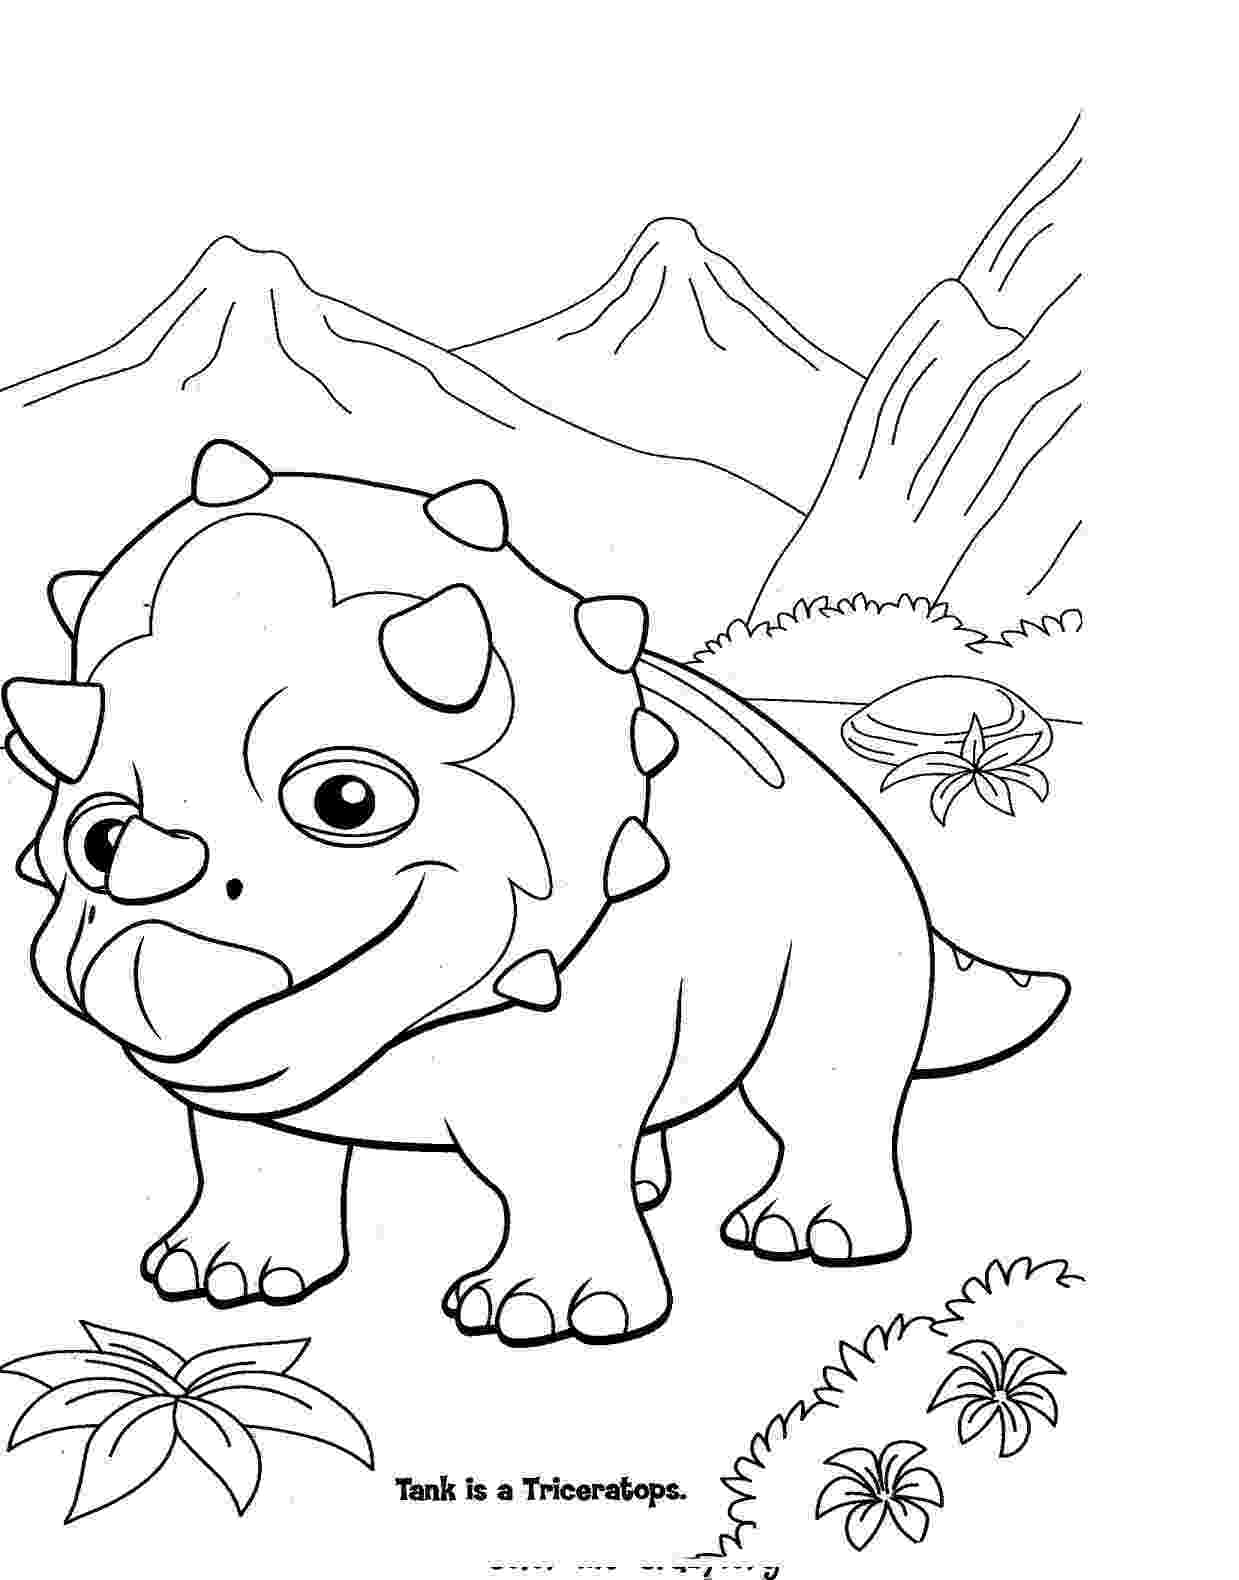 dinosaur colouring page printable dinosaur coloring pages for kids cool2bkids dinosaur colouring page 1 1